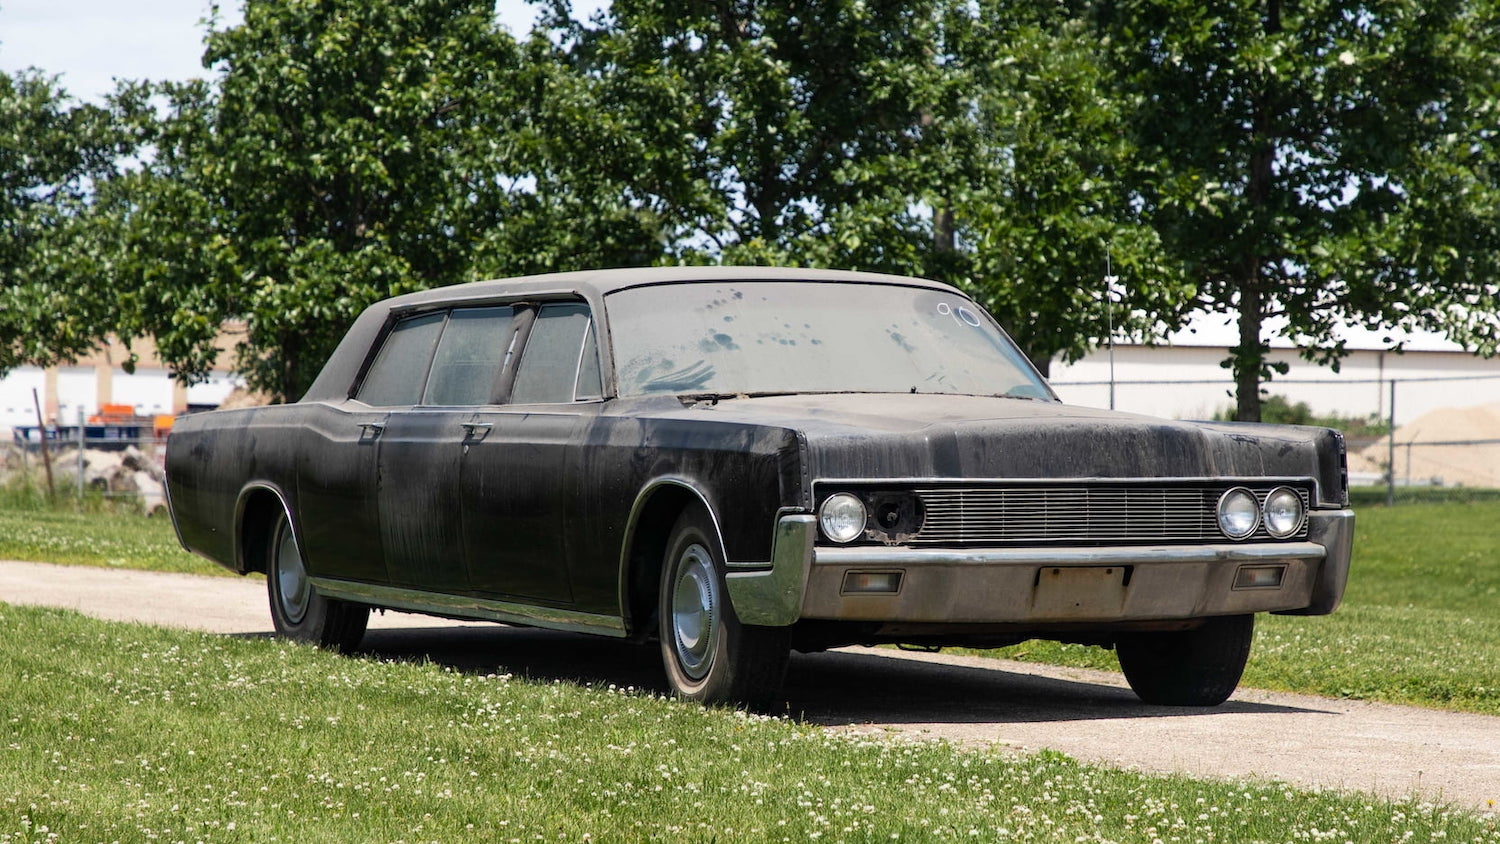 Elvis' 1967 Lincoln, a wedding gift from Colonel Parker, sells for $165,000